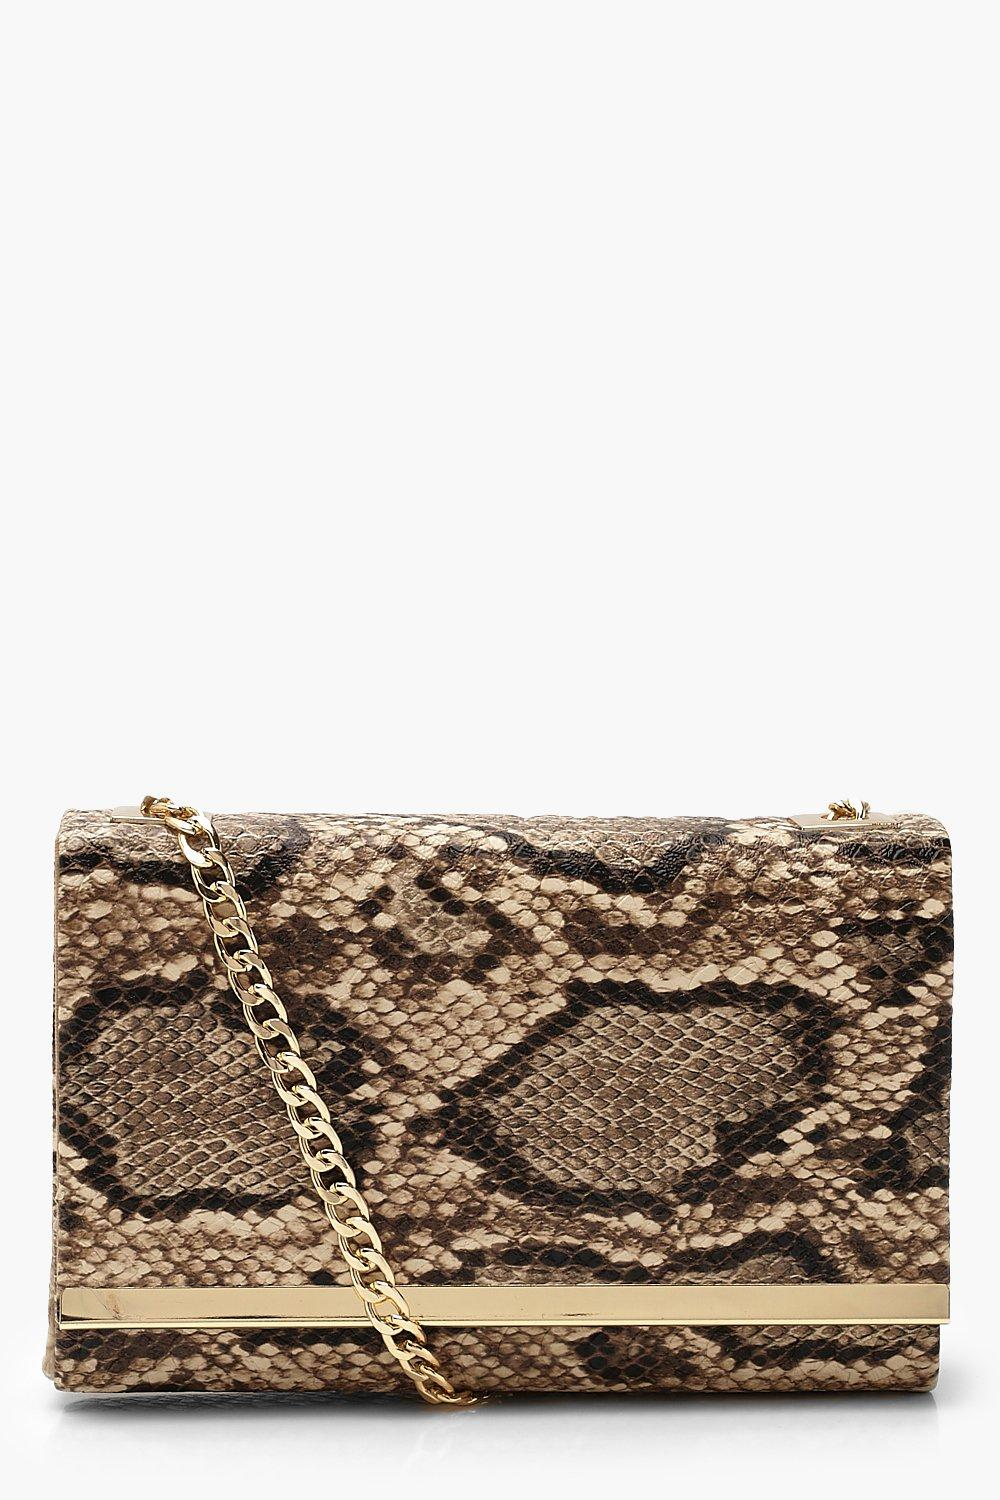 boohoo Womens Faux Snake Structured Suedette Clutch Bag - Brown - One Size, Brown